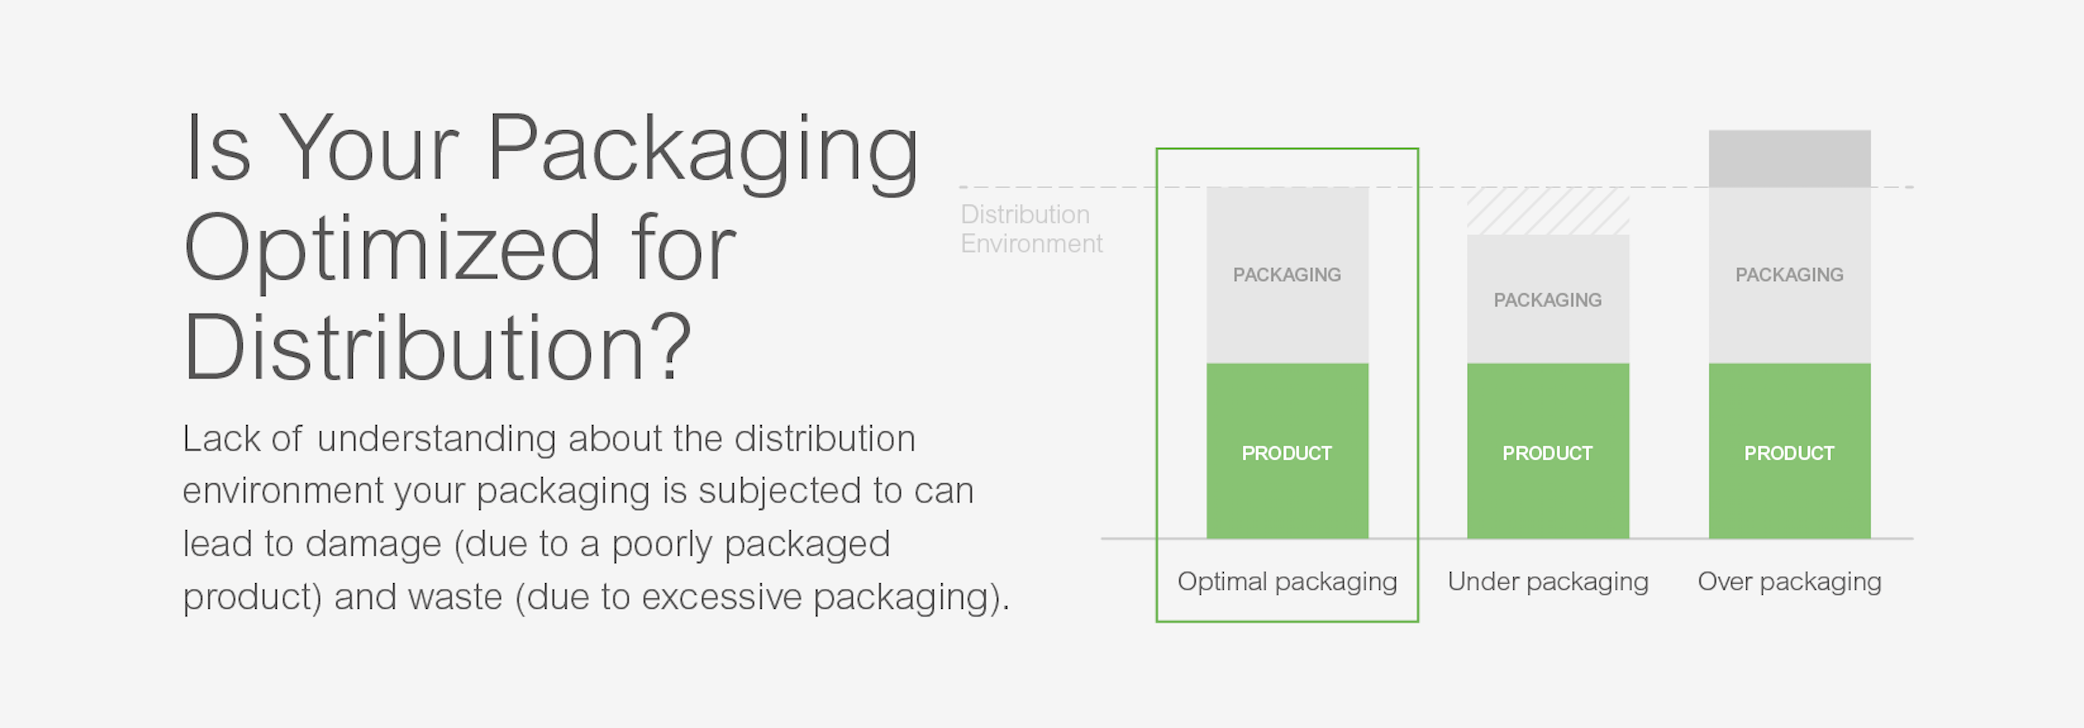 Is Your Packaging Optimized for Distribution.png